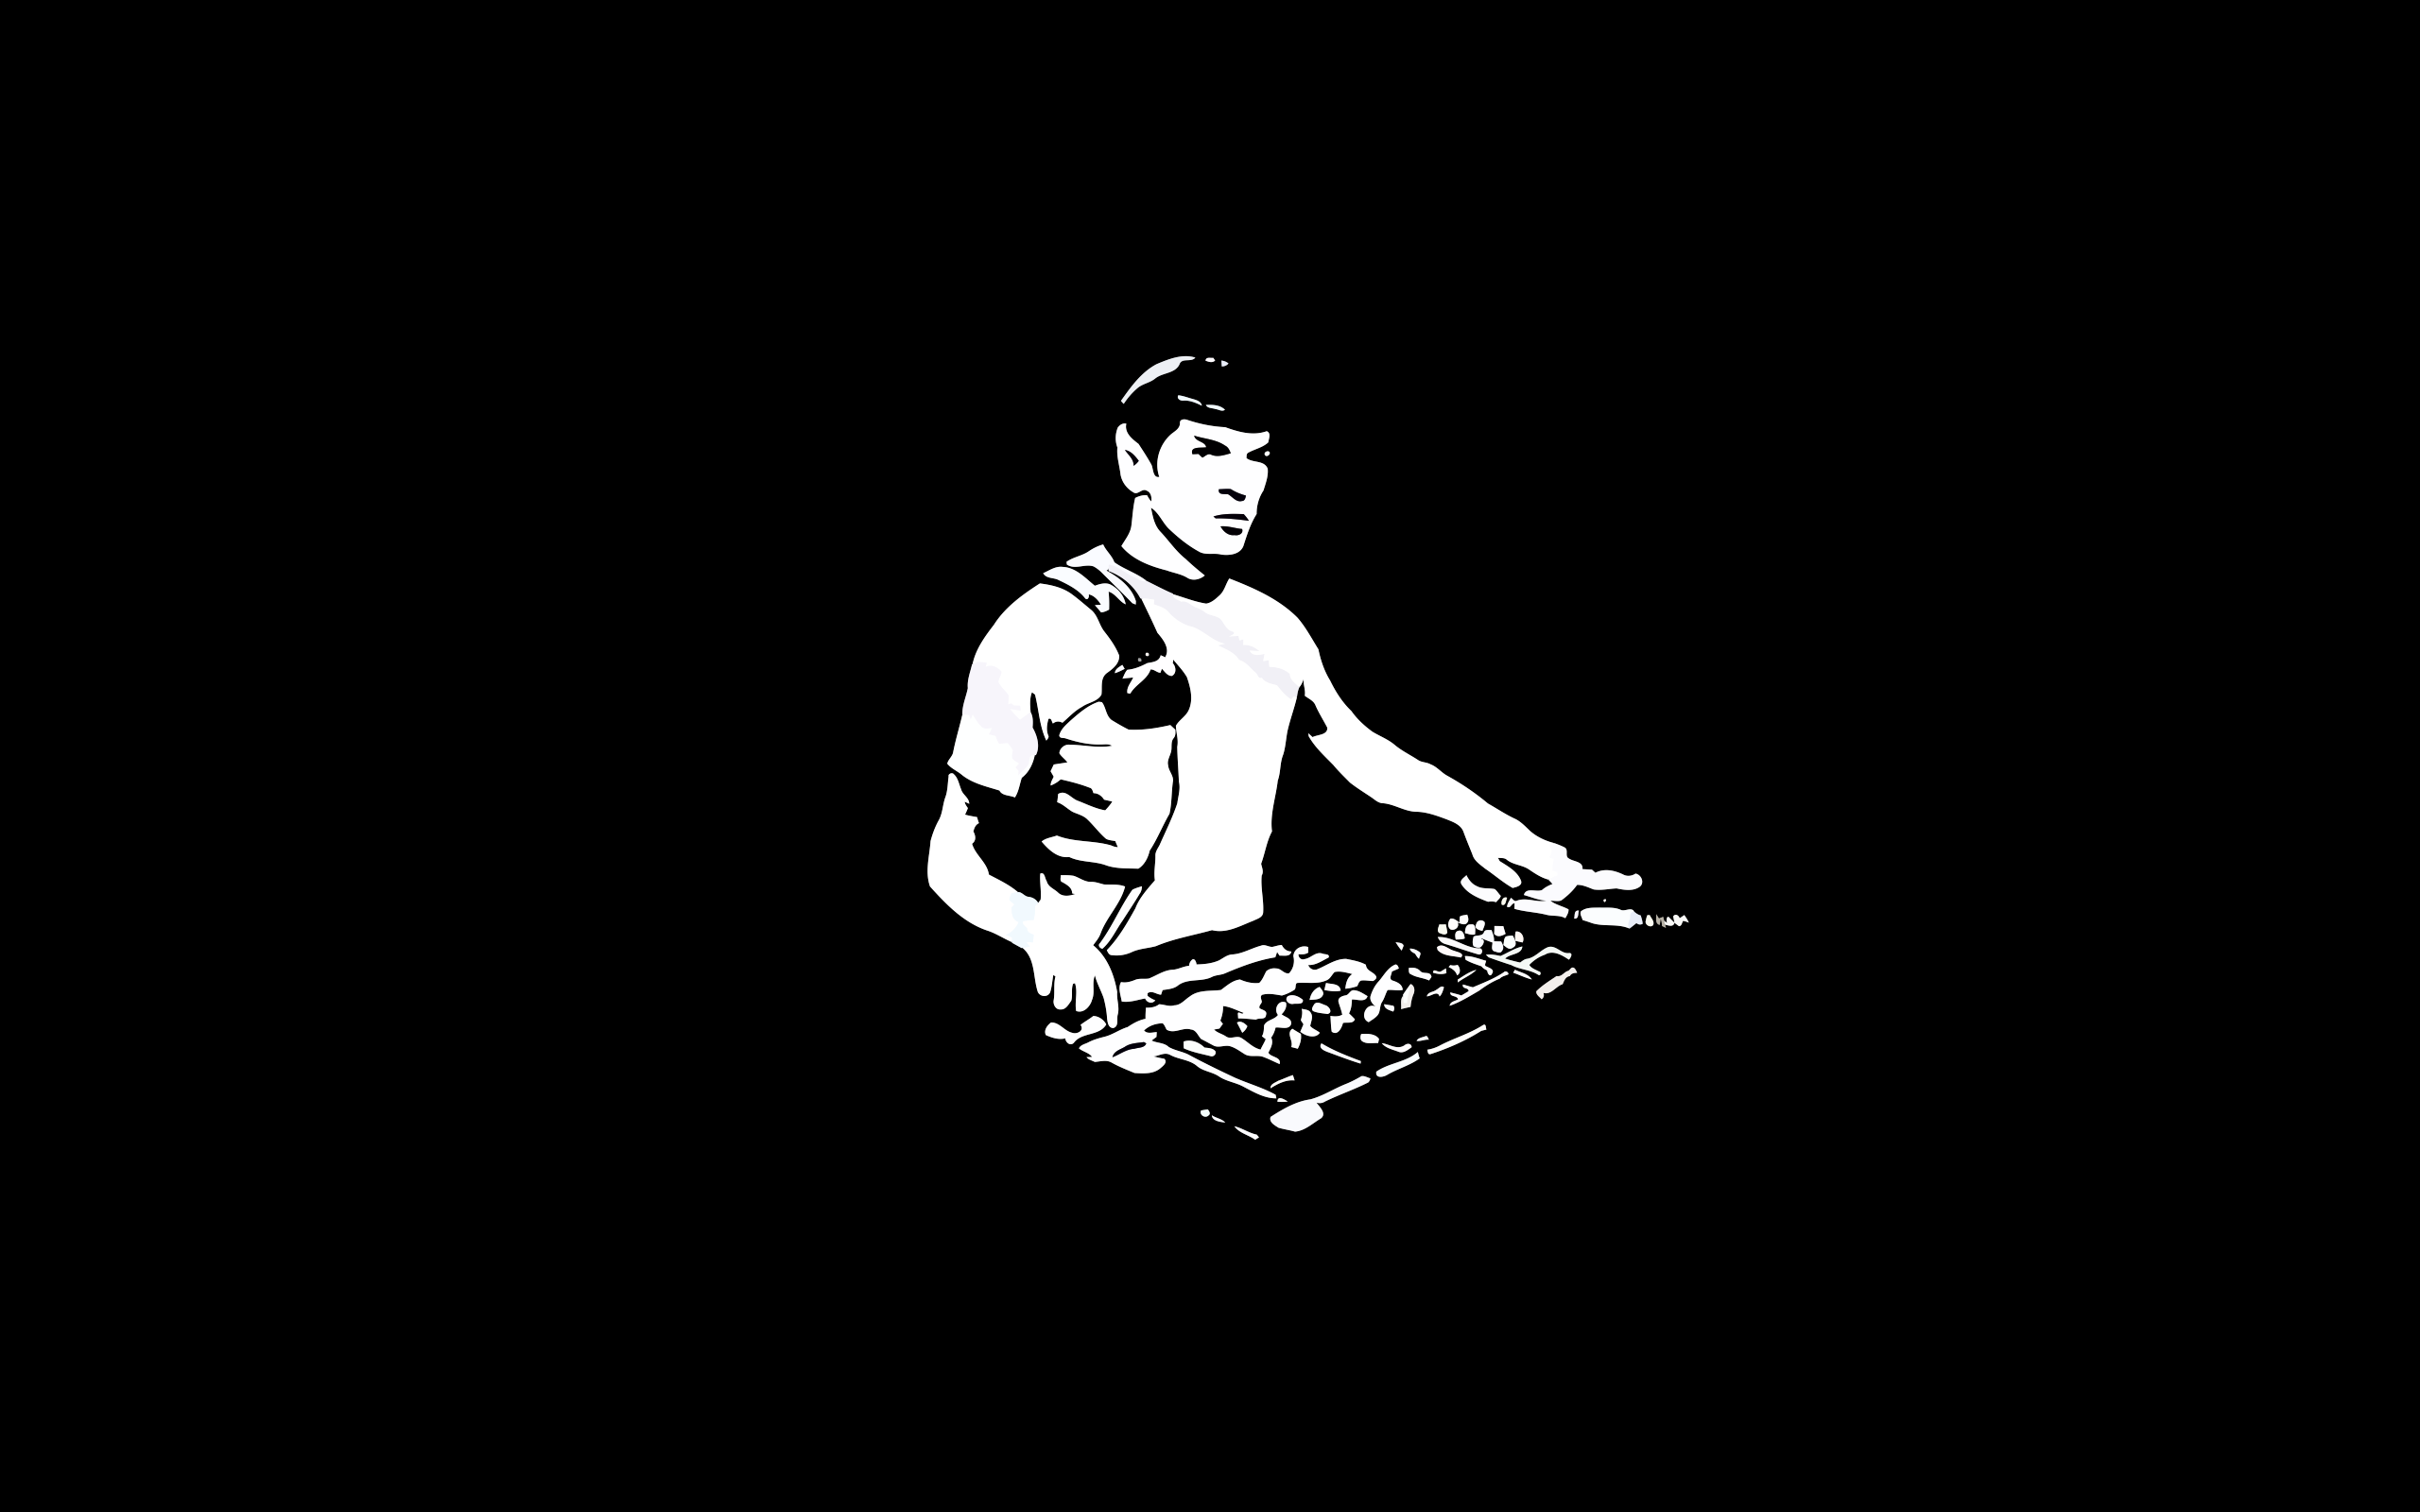 DJ Minimal Wallpaper